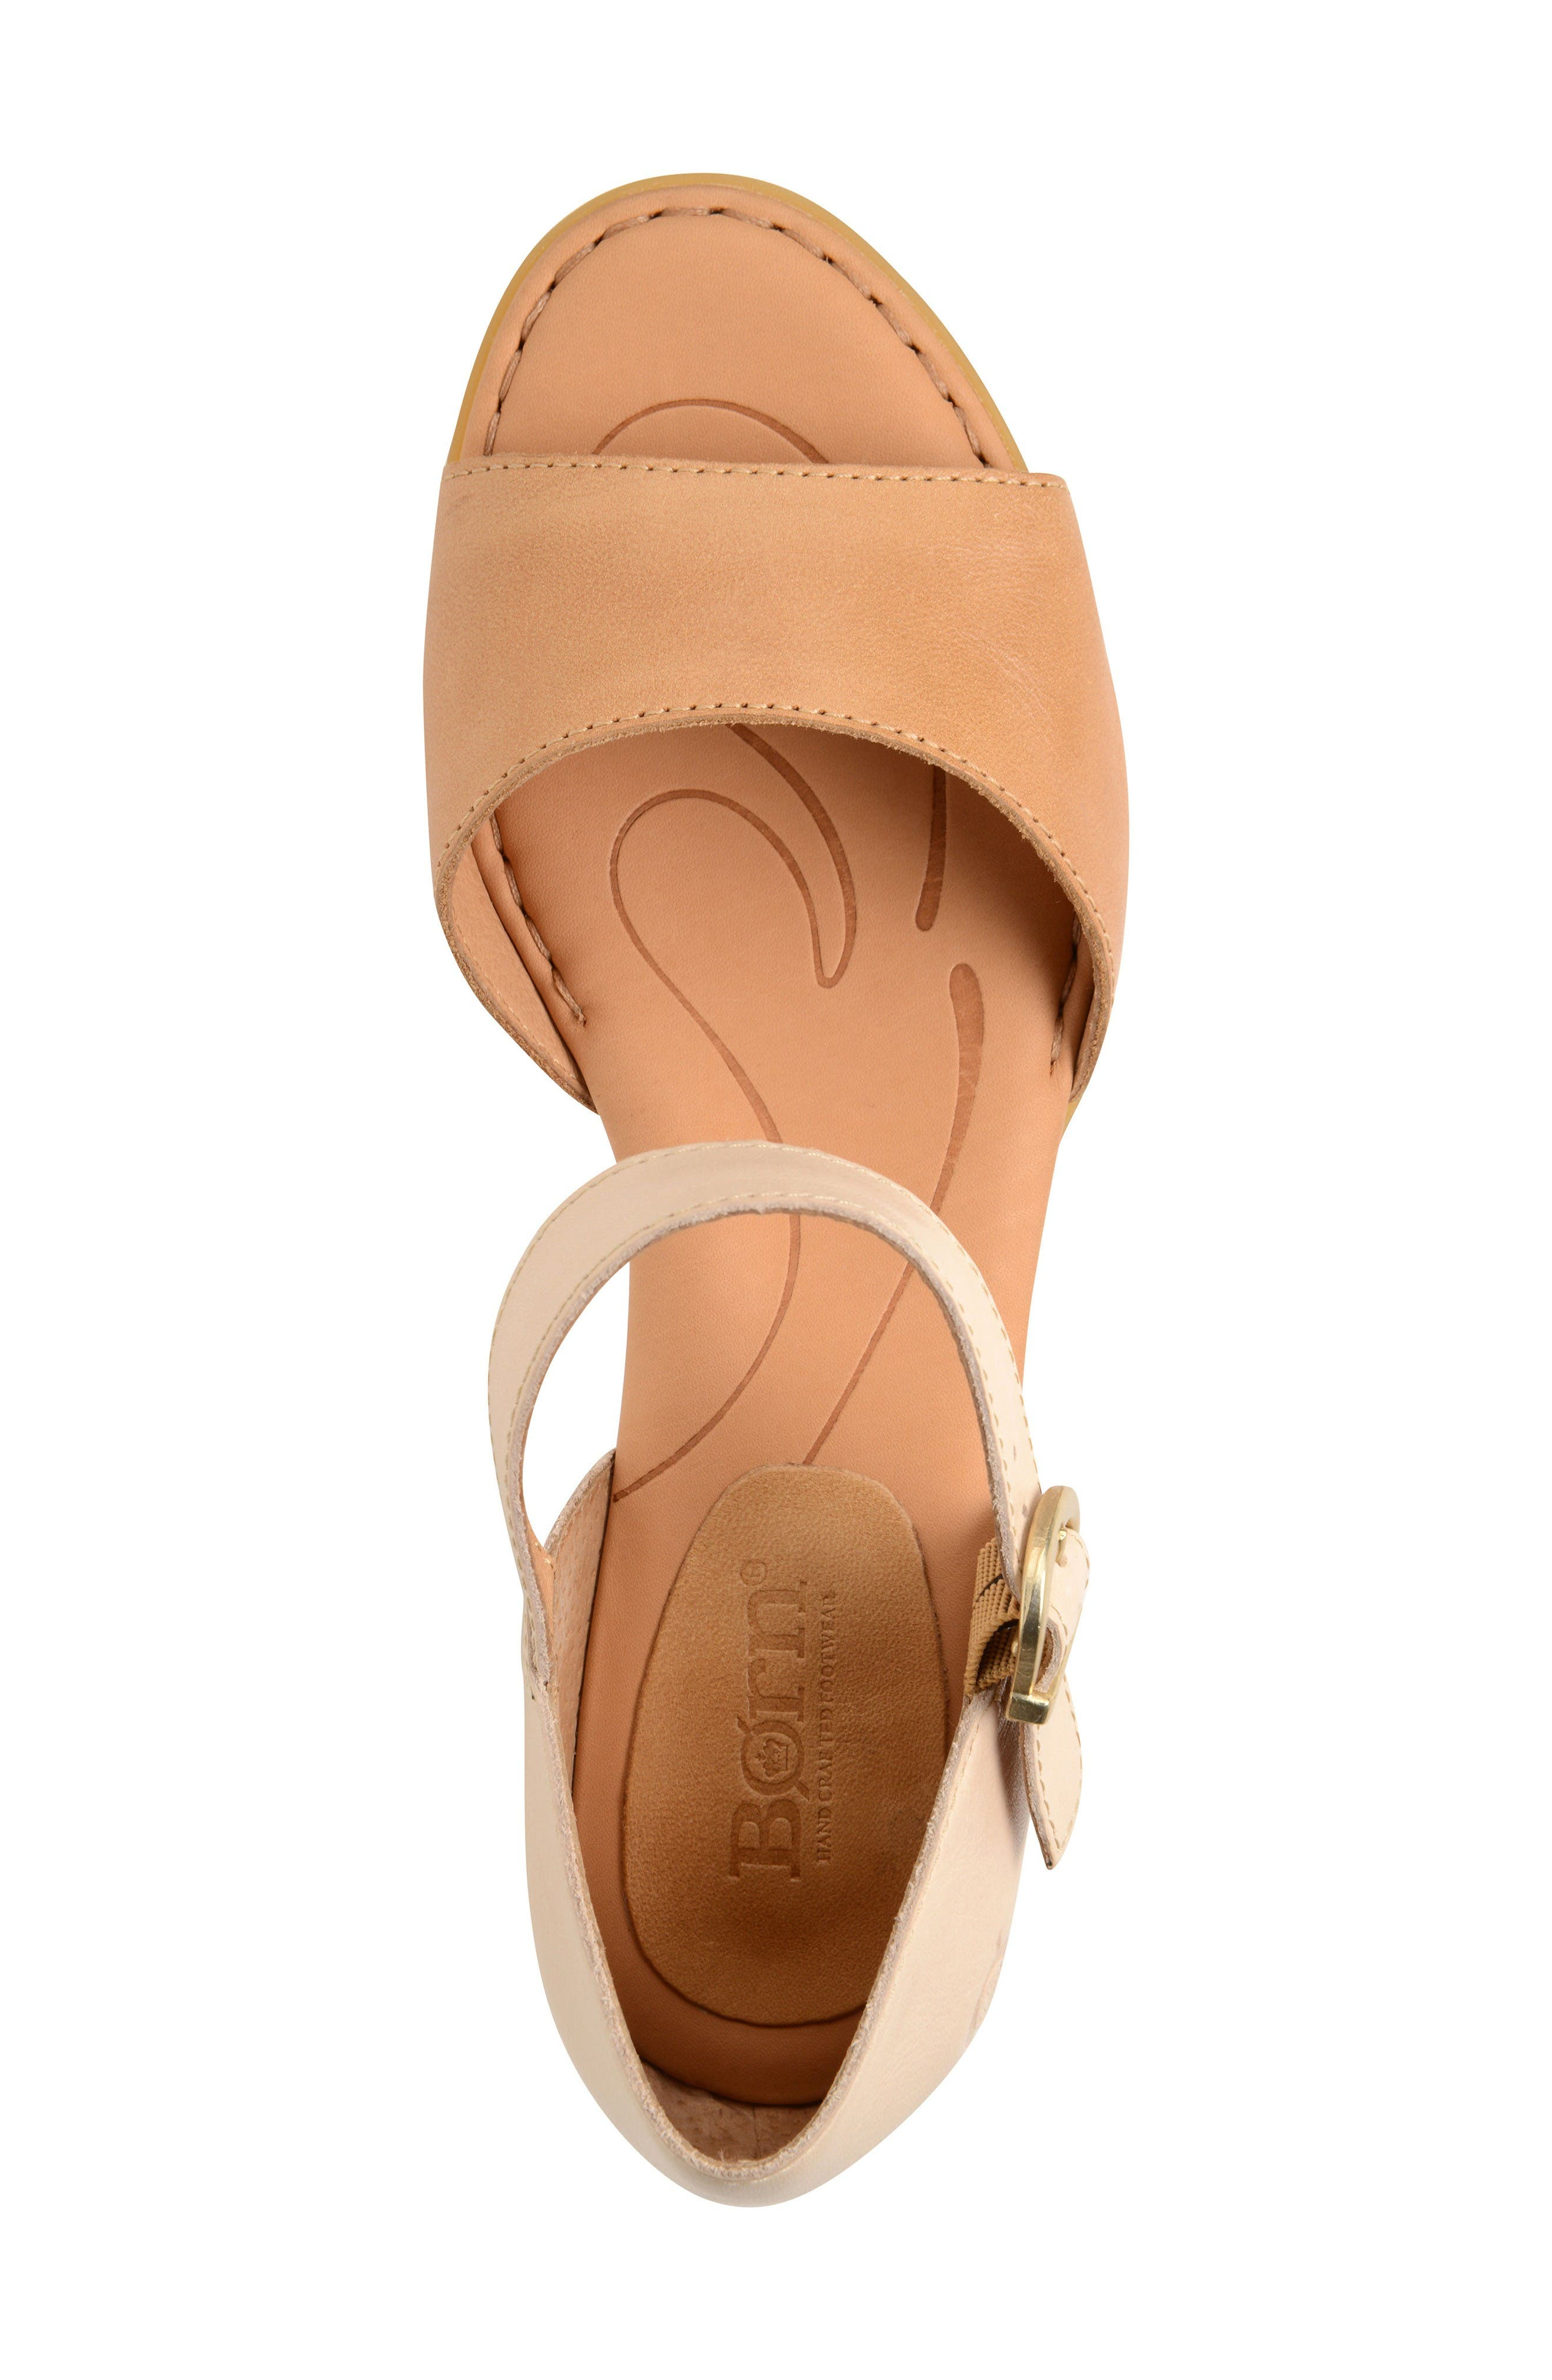 Cairo d'Orsay Sandal,                             Alternate thumbnail 3, color,                             Natural Leather